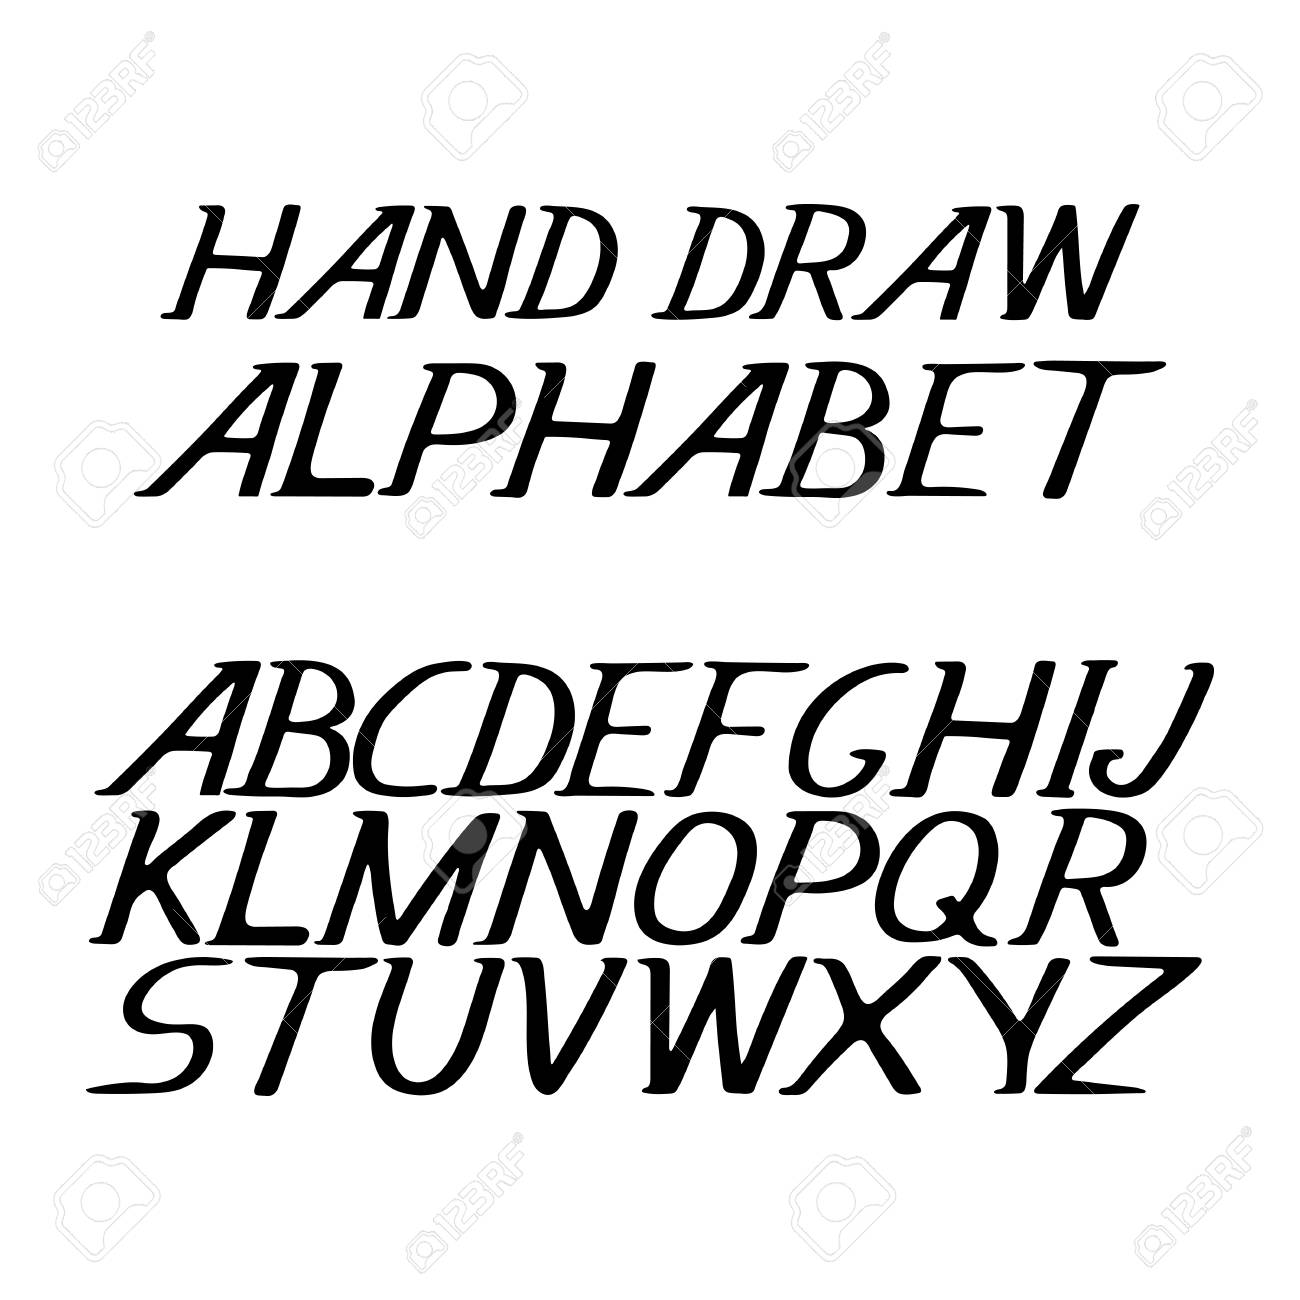 hand draw alphabet letters under the classical bias, to design